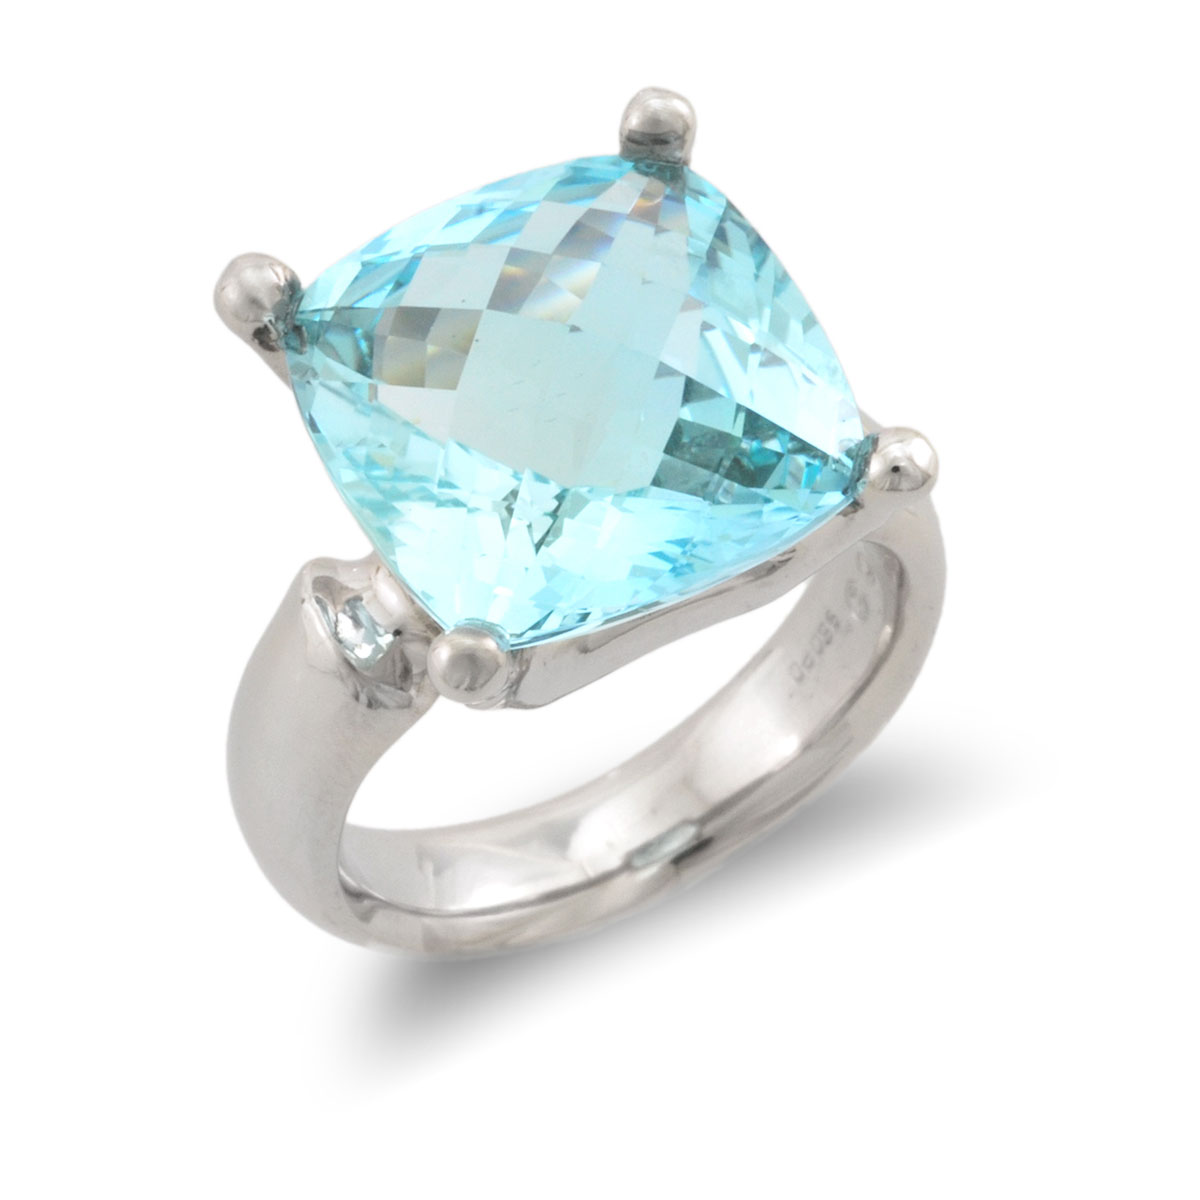 WR0260 Large Cushion Cut Ring